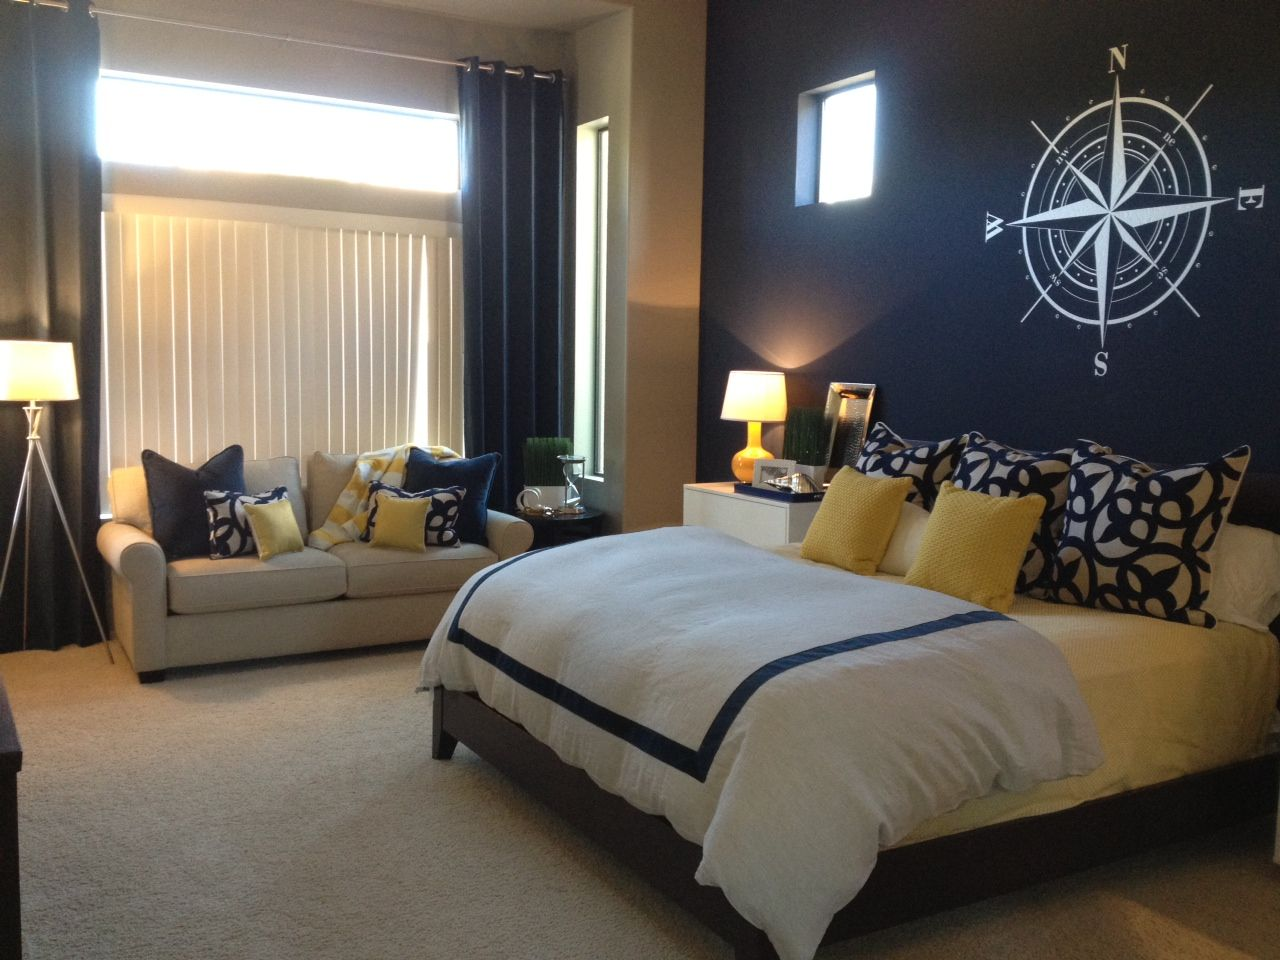 Nautical Decor Bedroom Nautical Bedroom Decor The Magnificent Rooms That Look